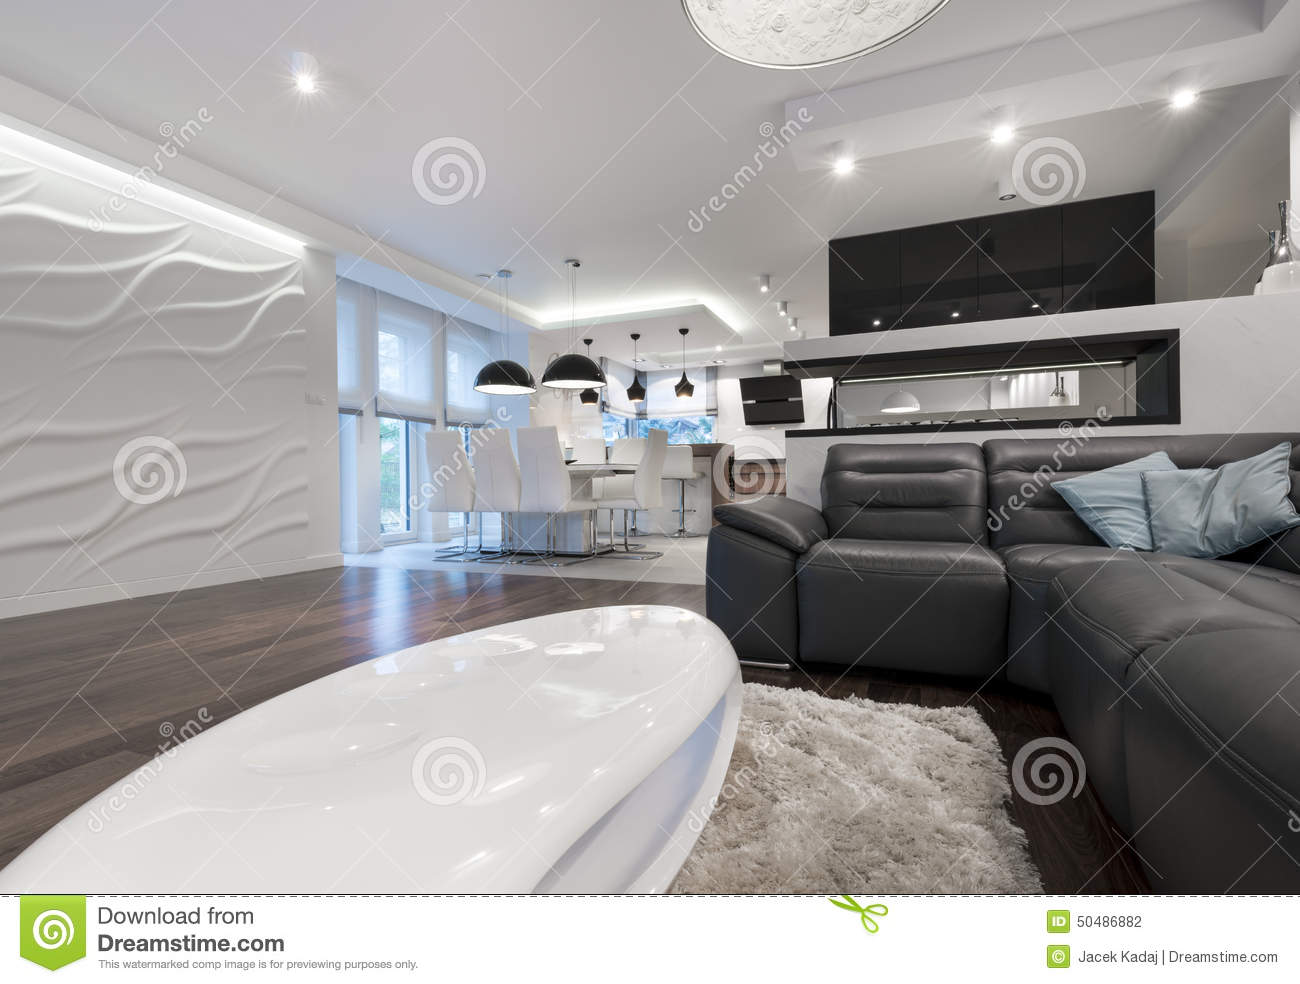 Modern Living Room With Kitchen Interior Design Modern Interior Design Living Room With Kitchen Stock Photo